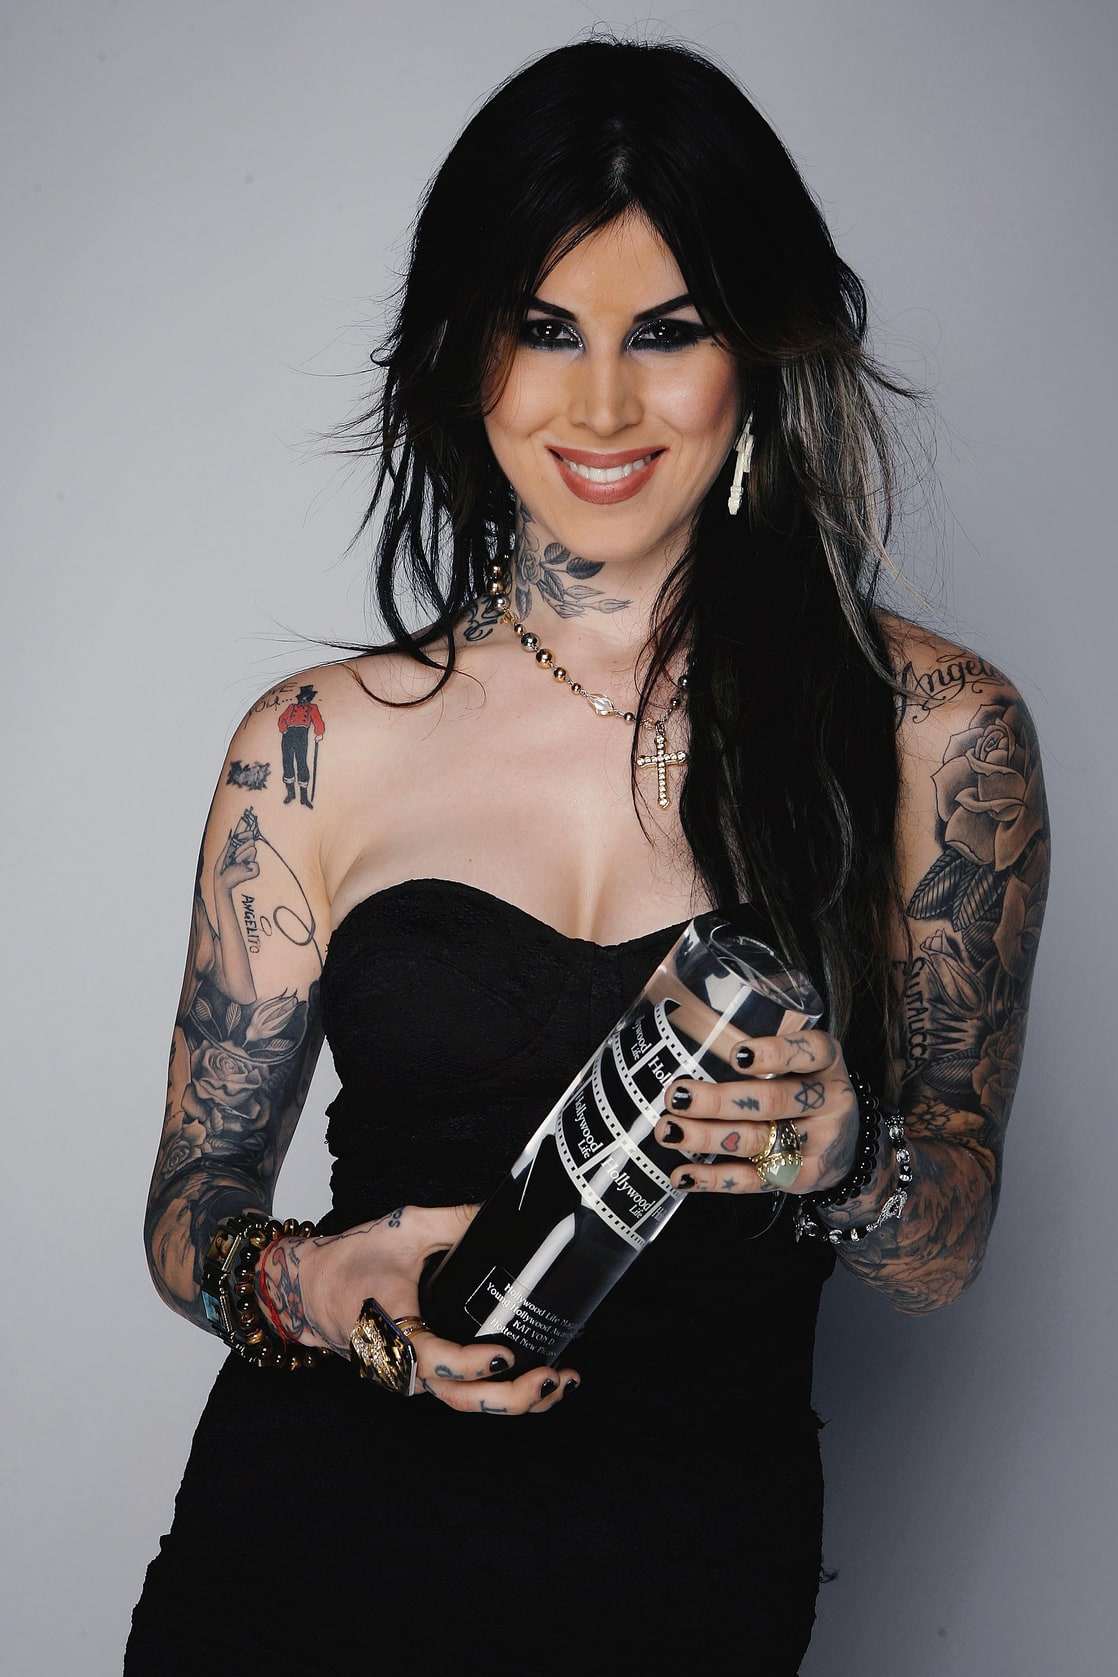 Kat Von D Married Husband Mother Daughter Where Is She Now